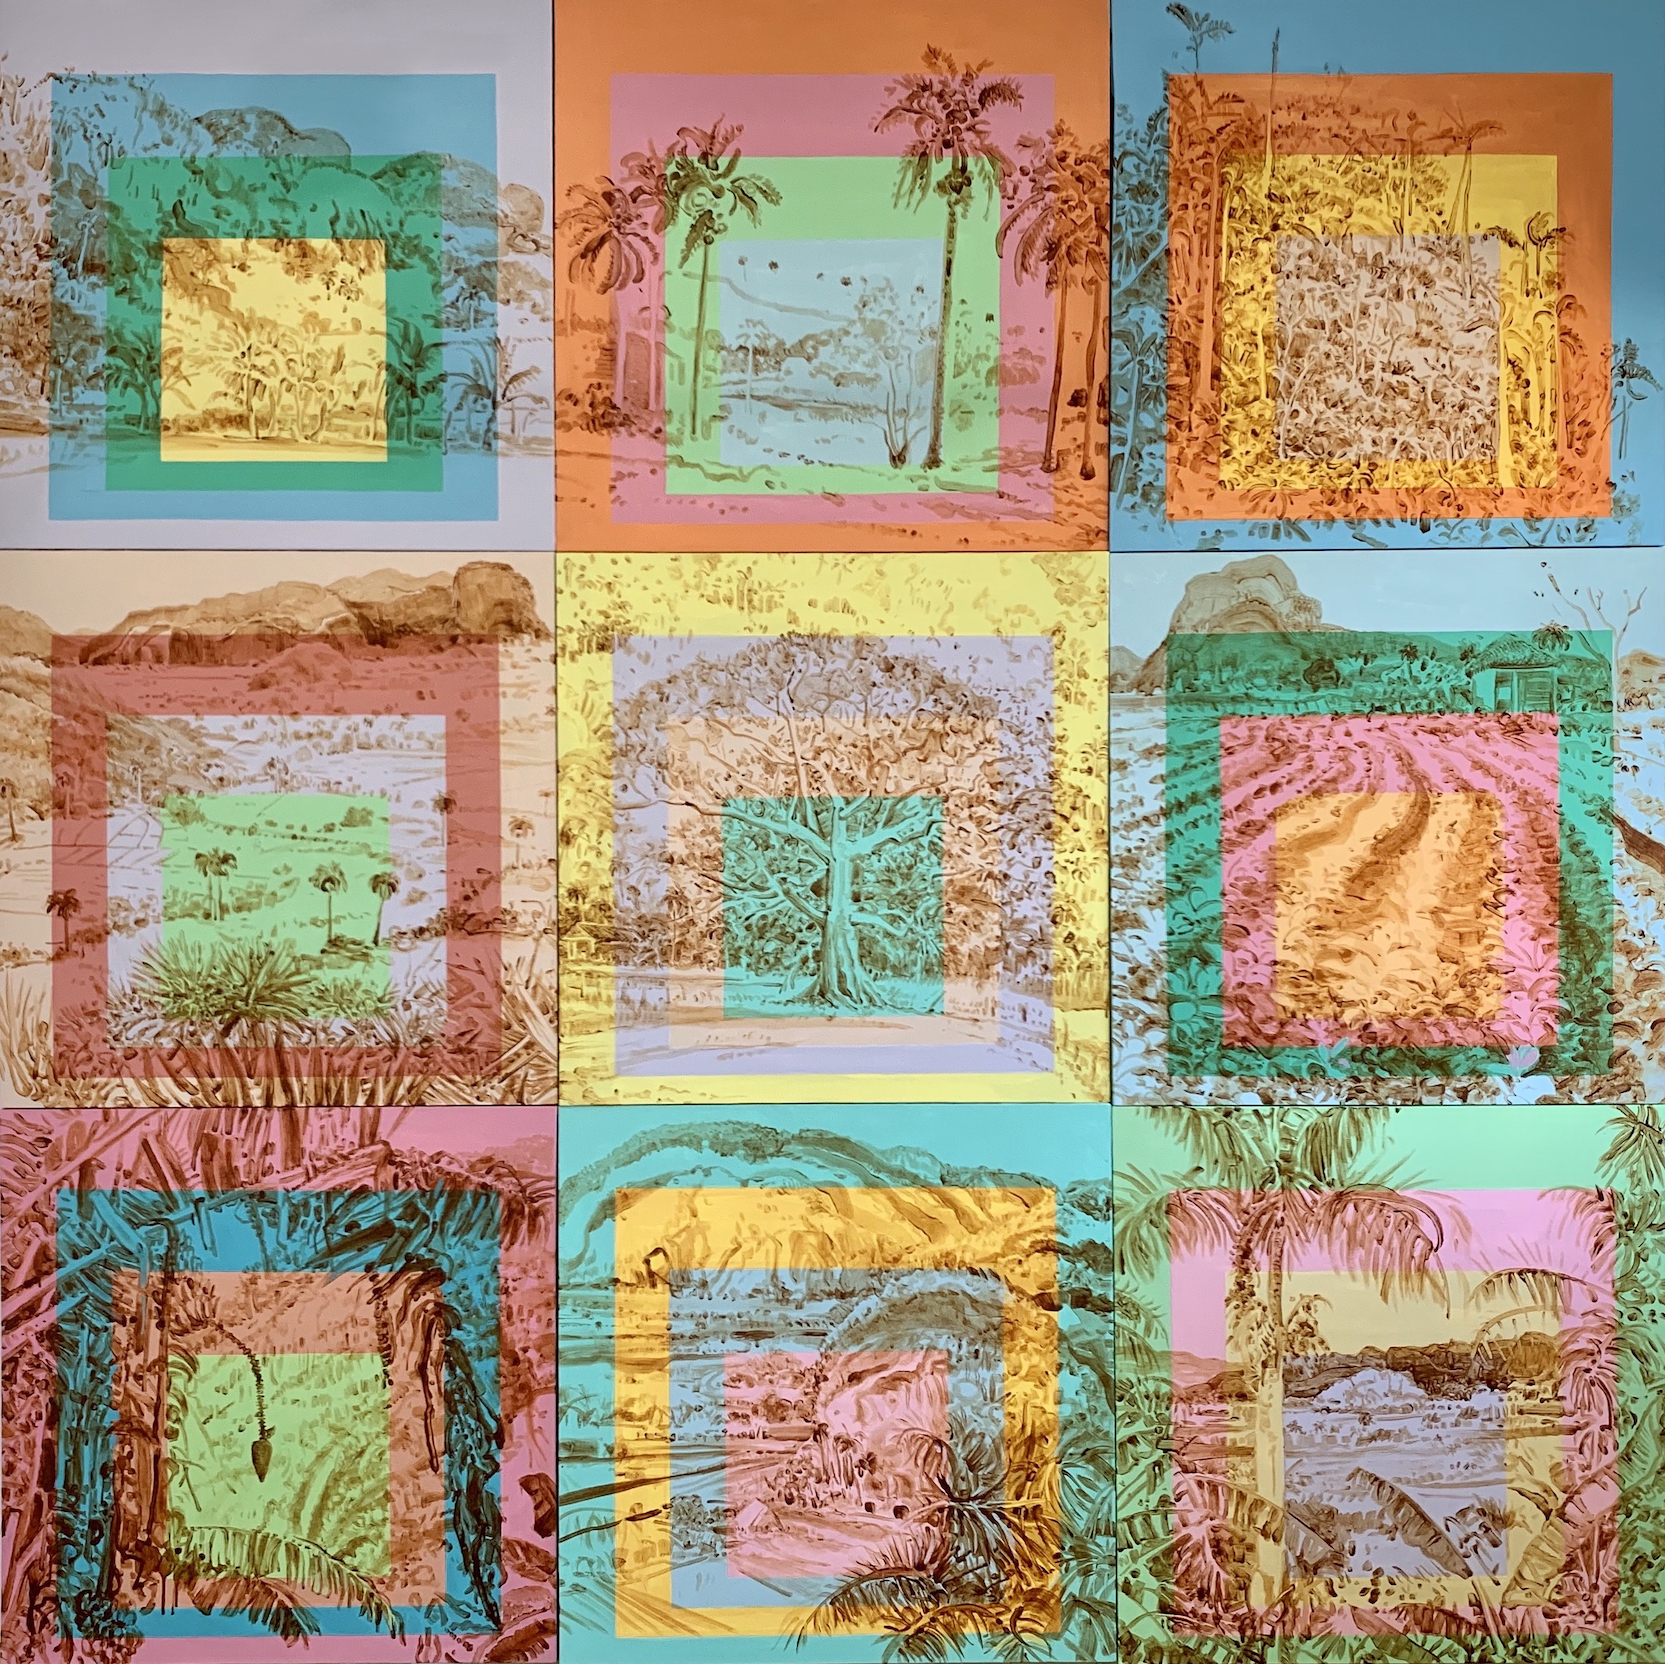 09_GarciaRoig_Hyphenated_Nature_9squares